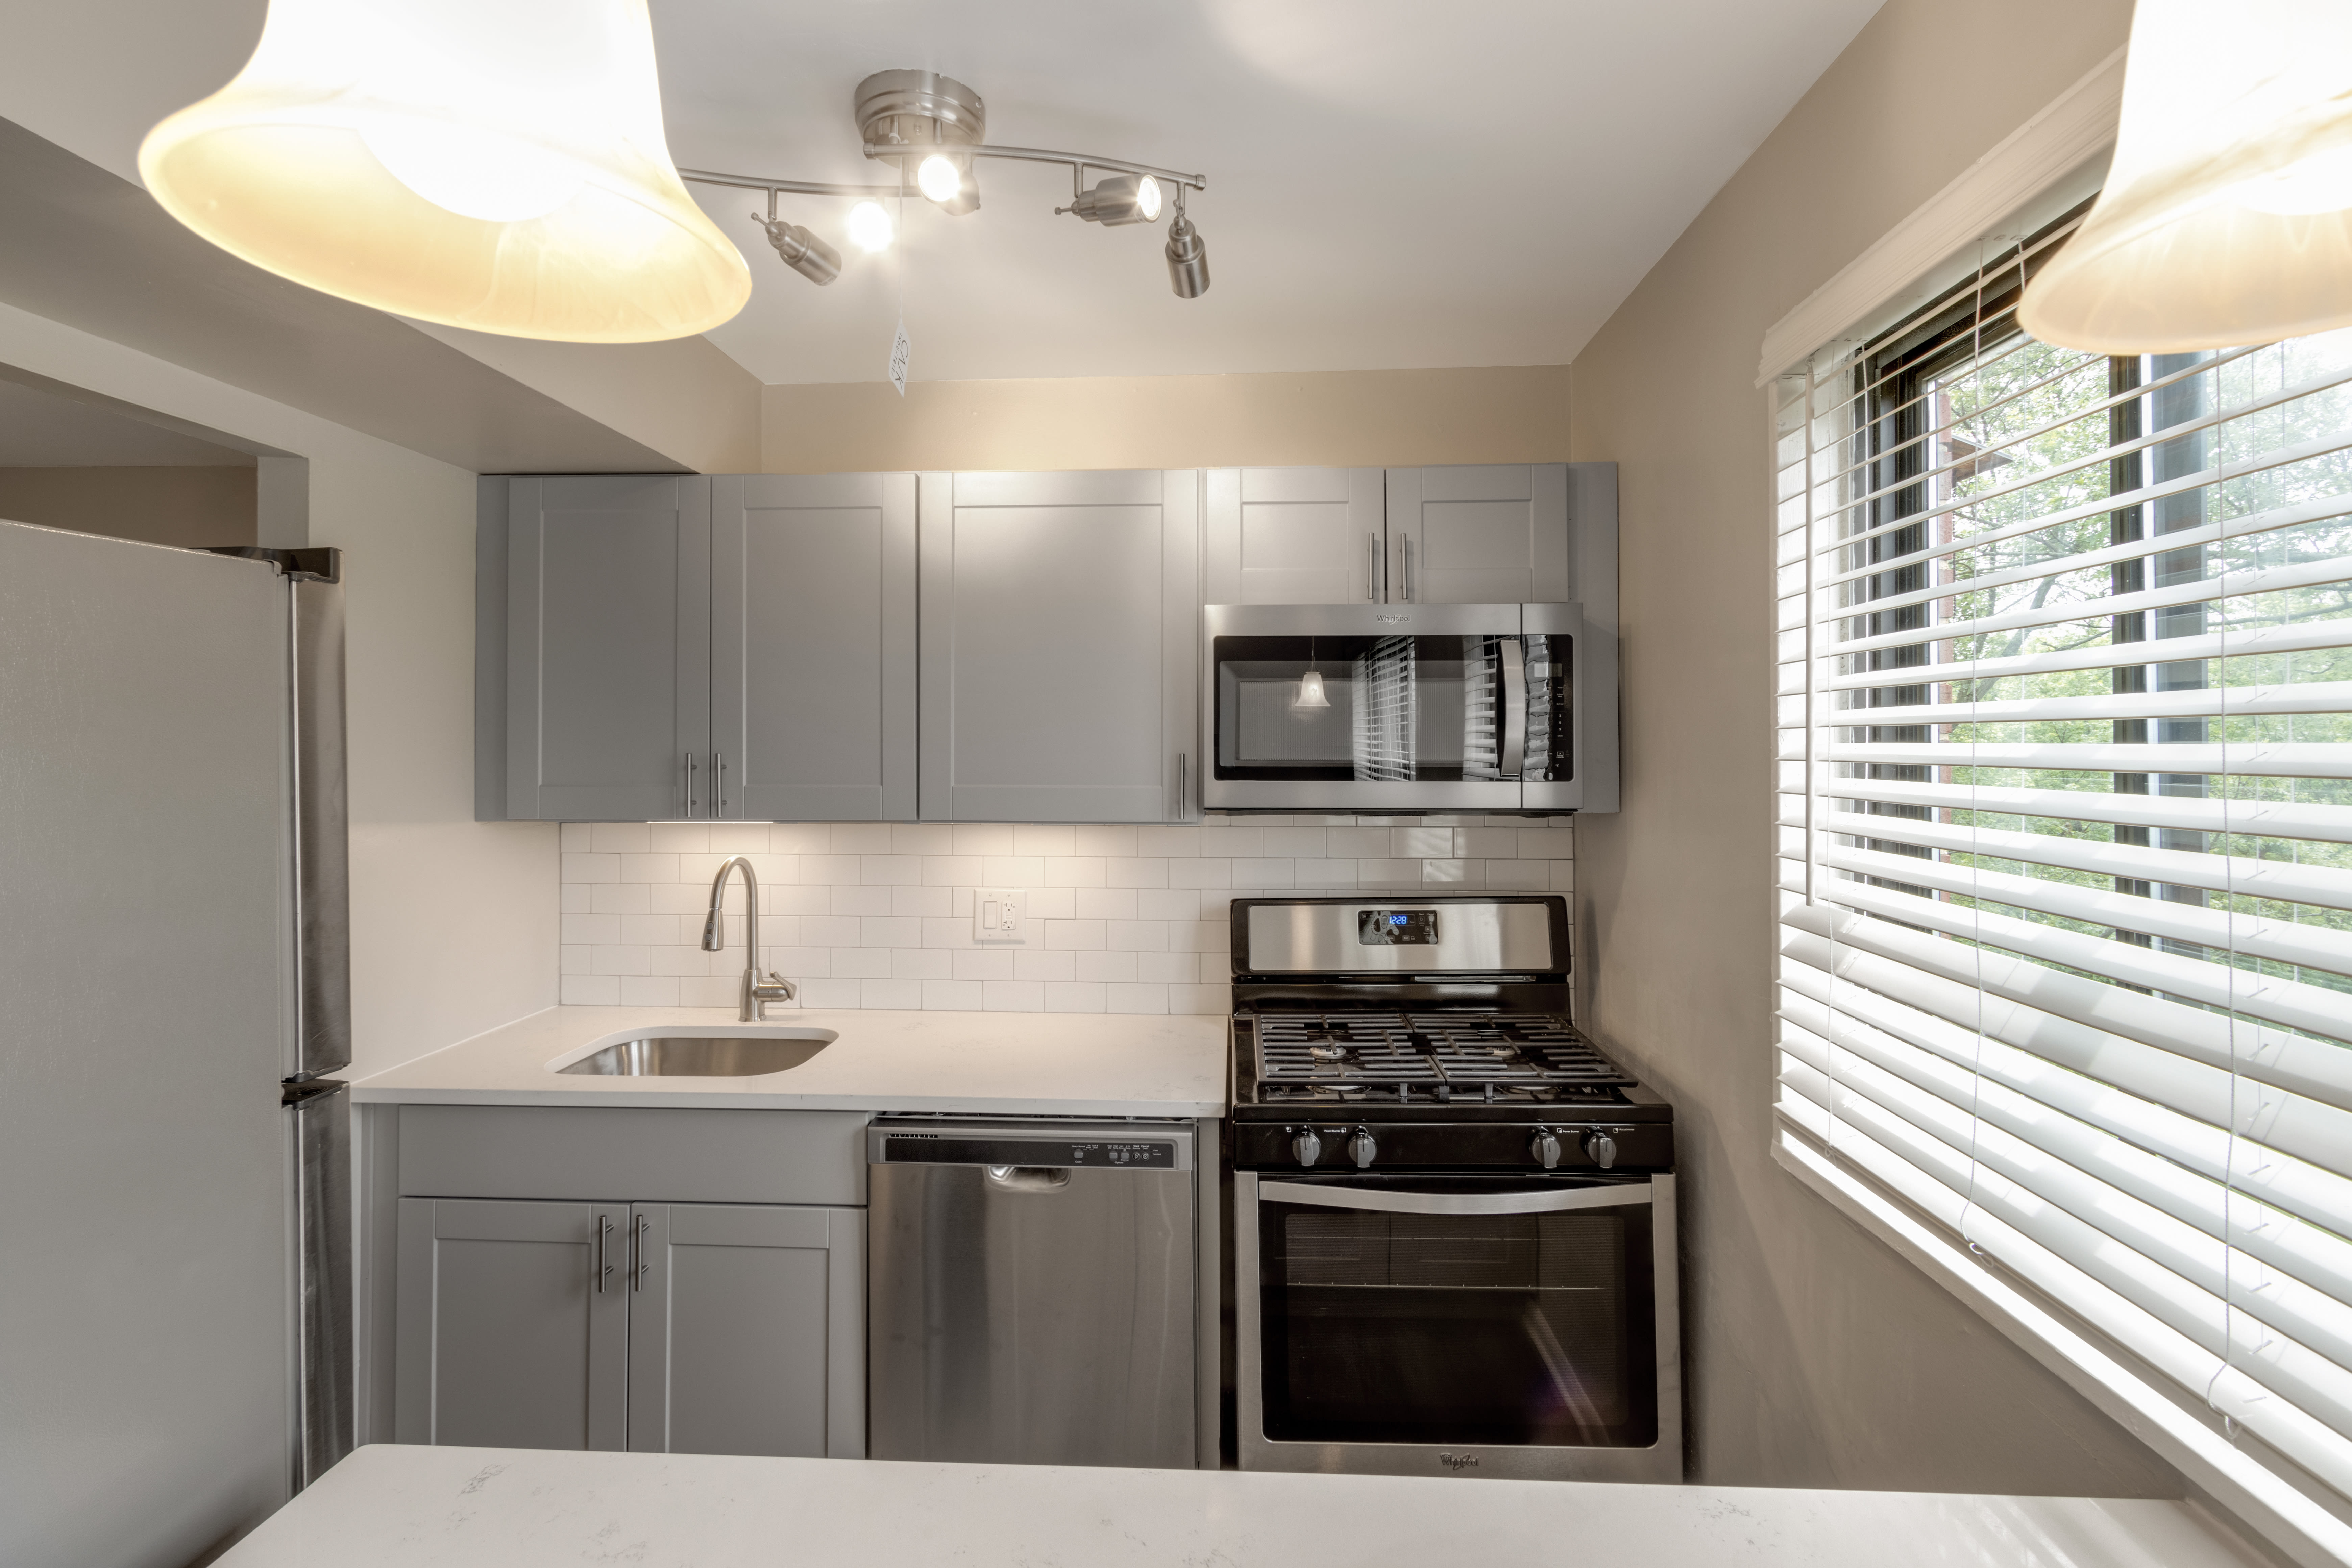 A kitchen with black appliances at Regency Pointe in Forestville, Maryland